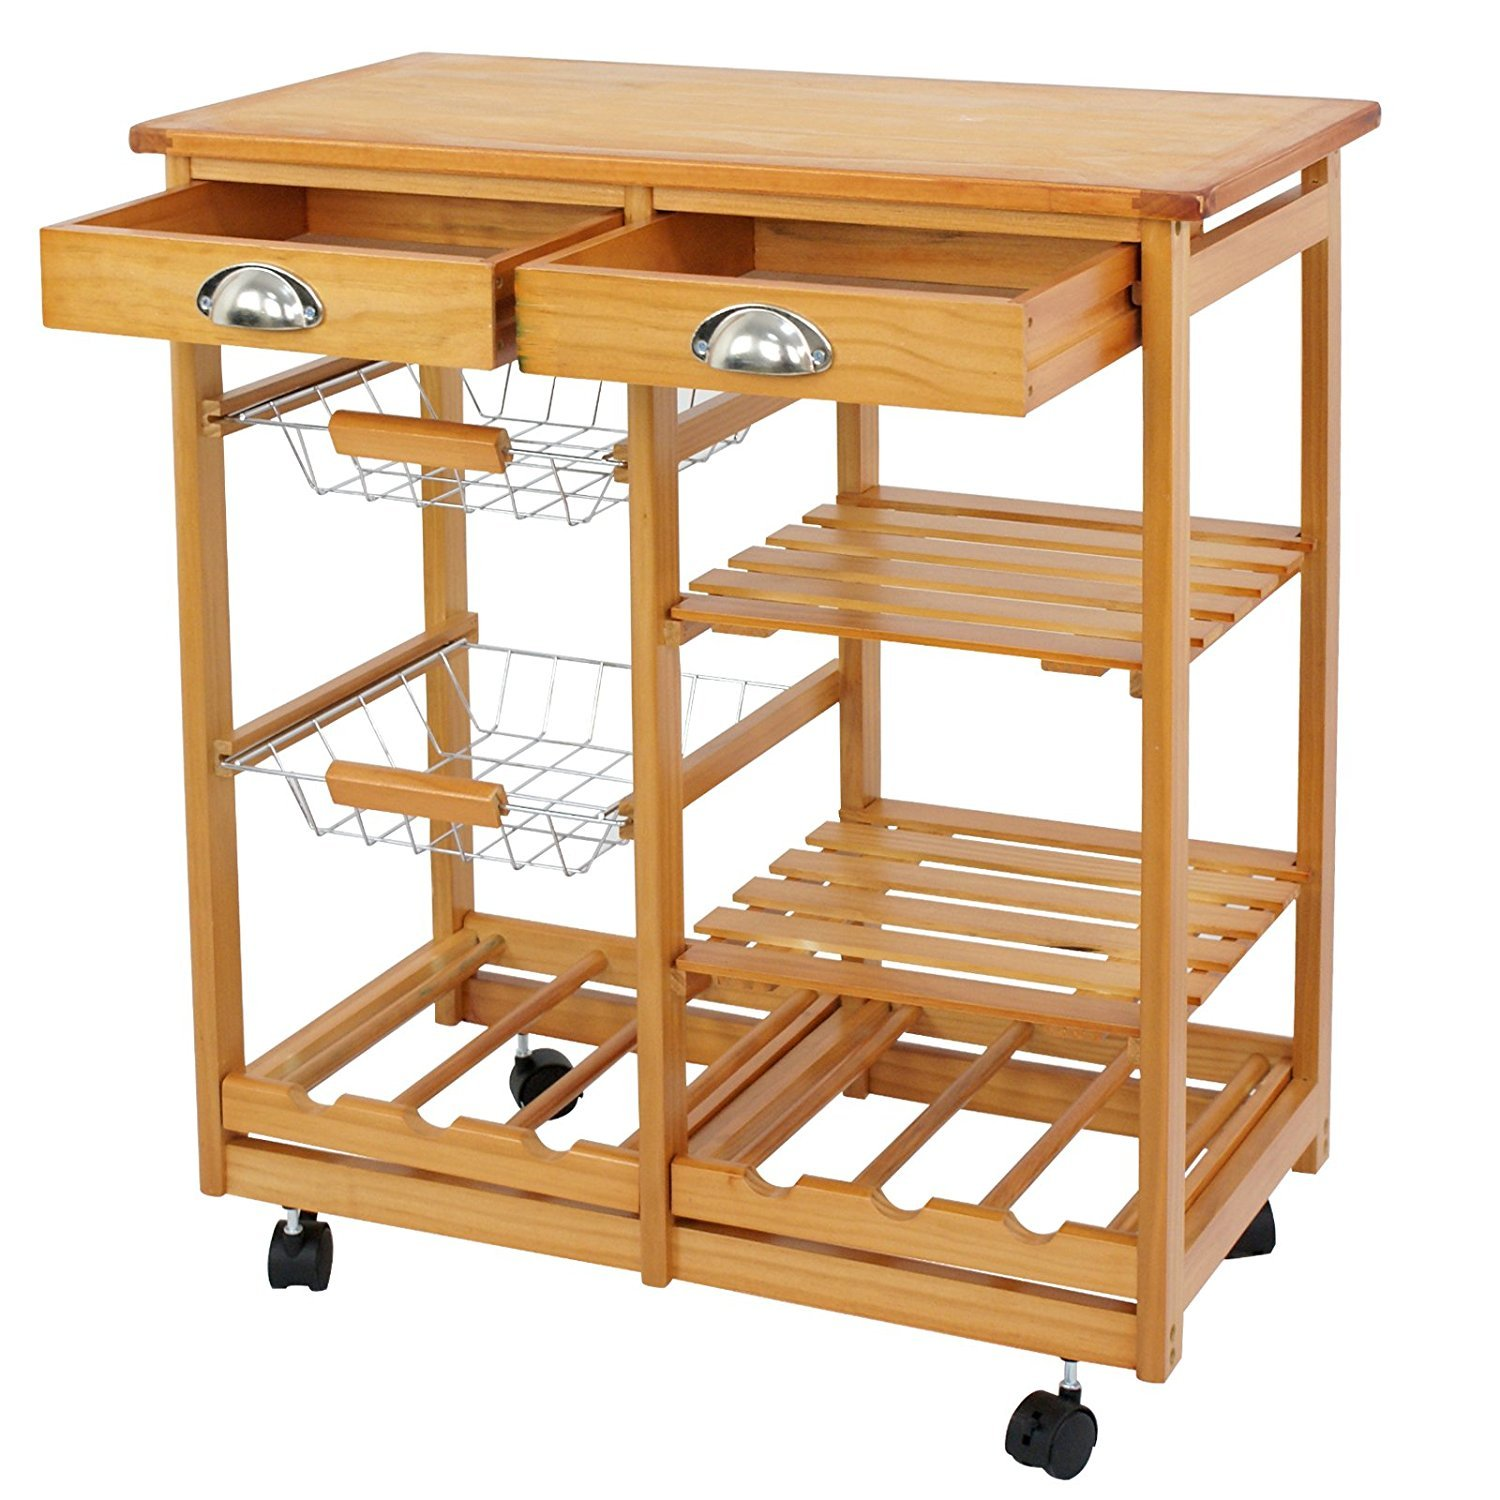 SUPER DEAL Multi-Purpose Wood Rolling Kitchen Island Trolley w/Drawer Shelves Basket by SUPER DEAL (Image #2)